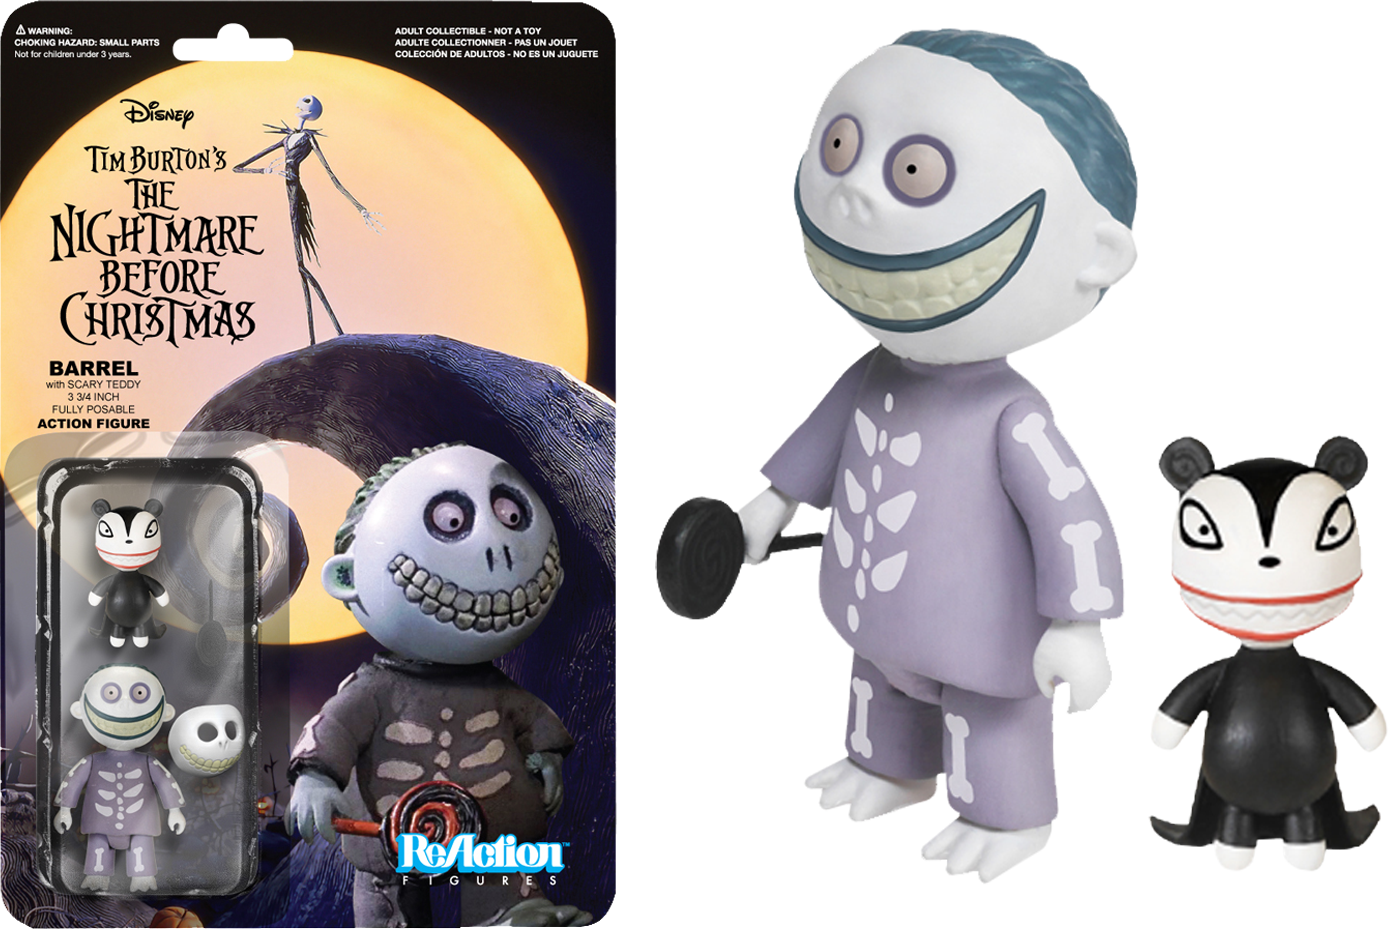 FUNKO releases THE NIGHTMARE BEFORE CHRISTMAS ReAction figures ...